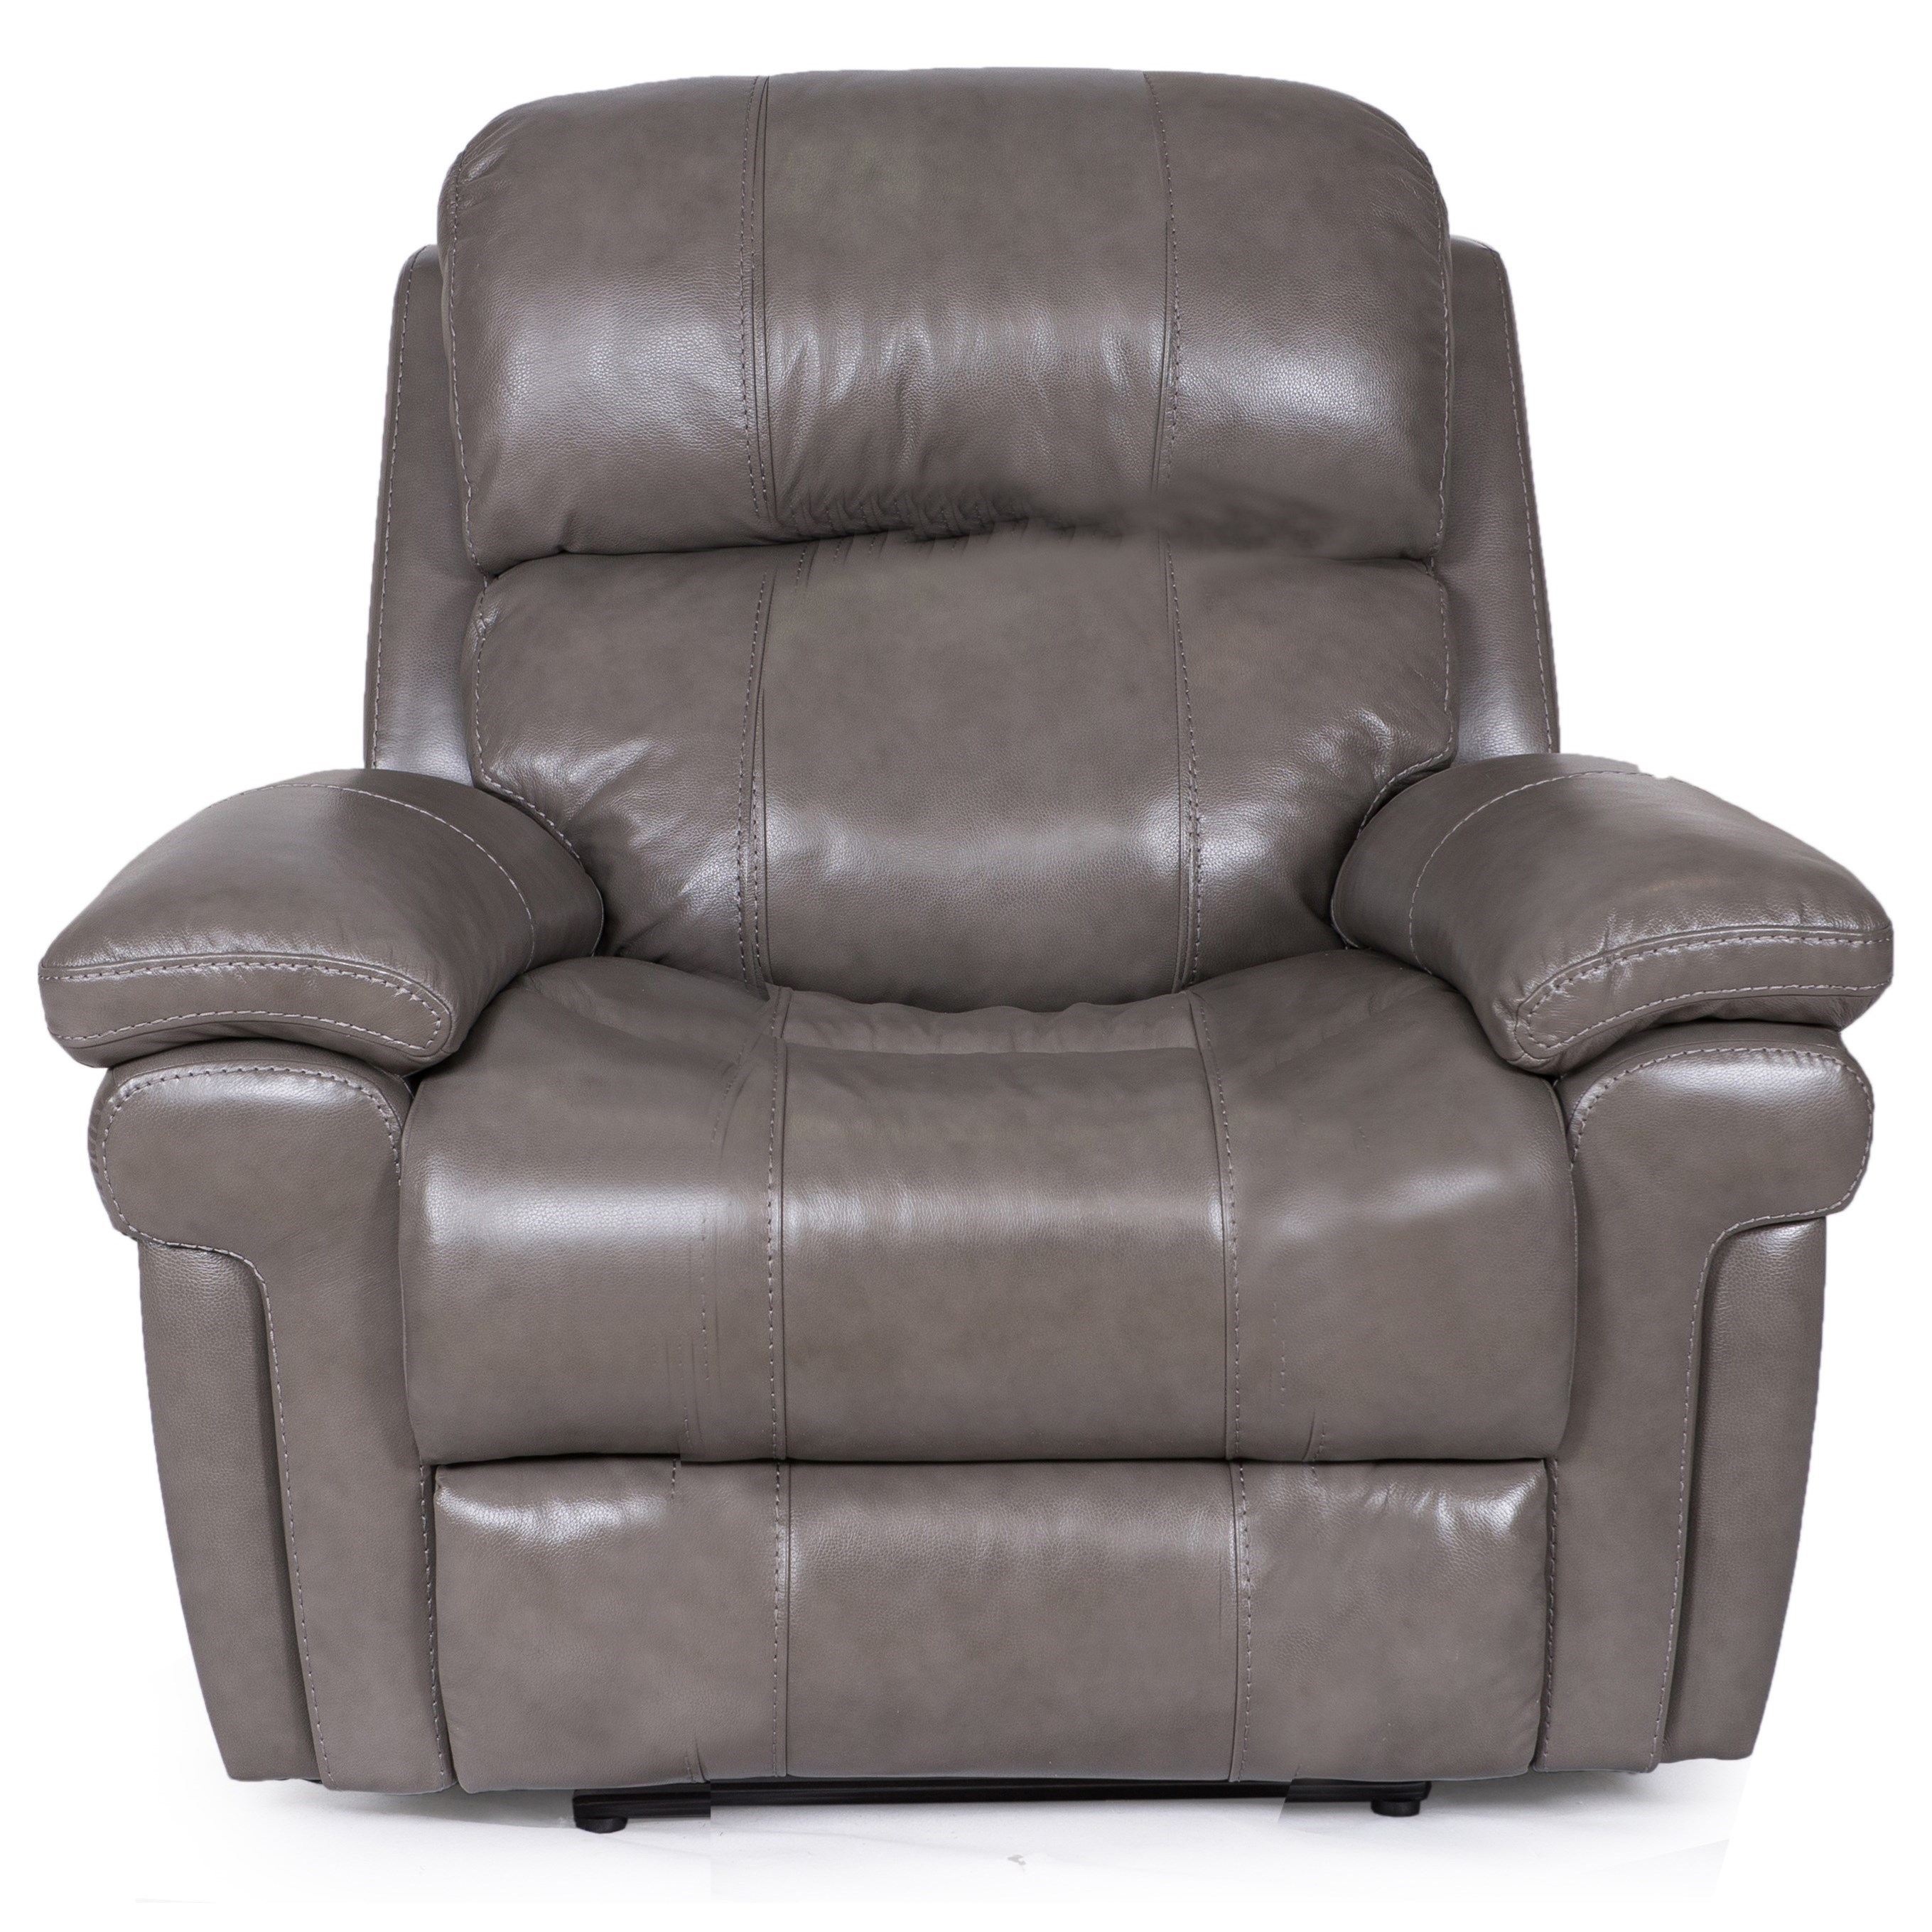 Synergy Home Furnishings 1394 Power Recliner With Power Headrest